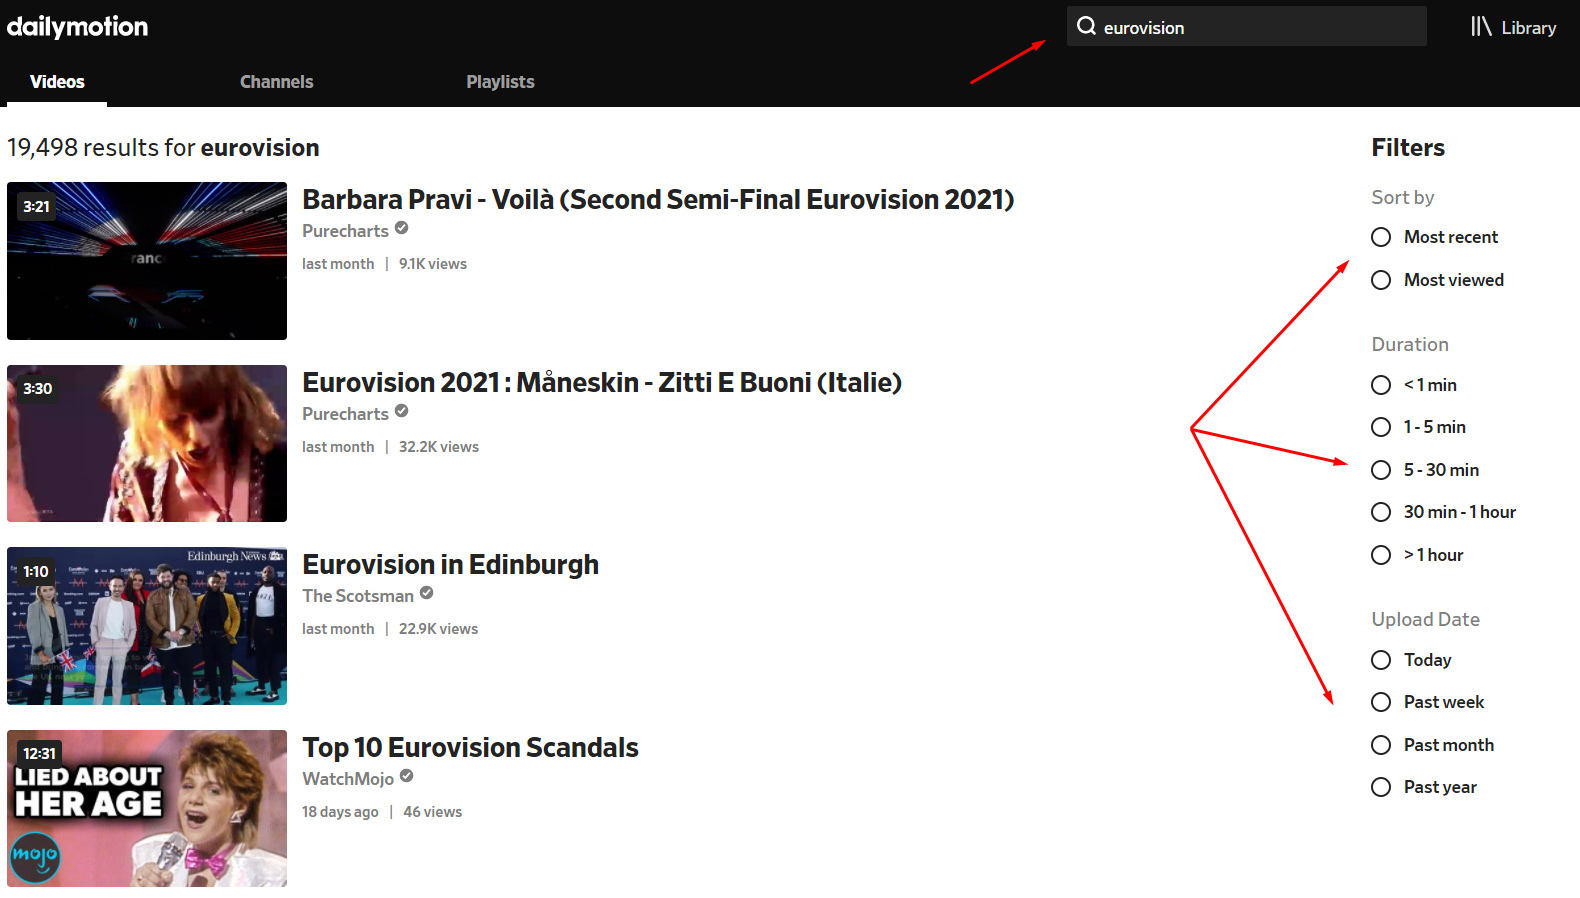 eurovision search query on dailymotion search filters